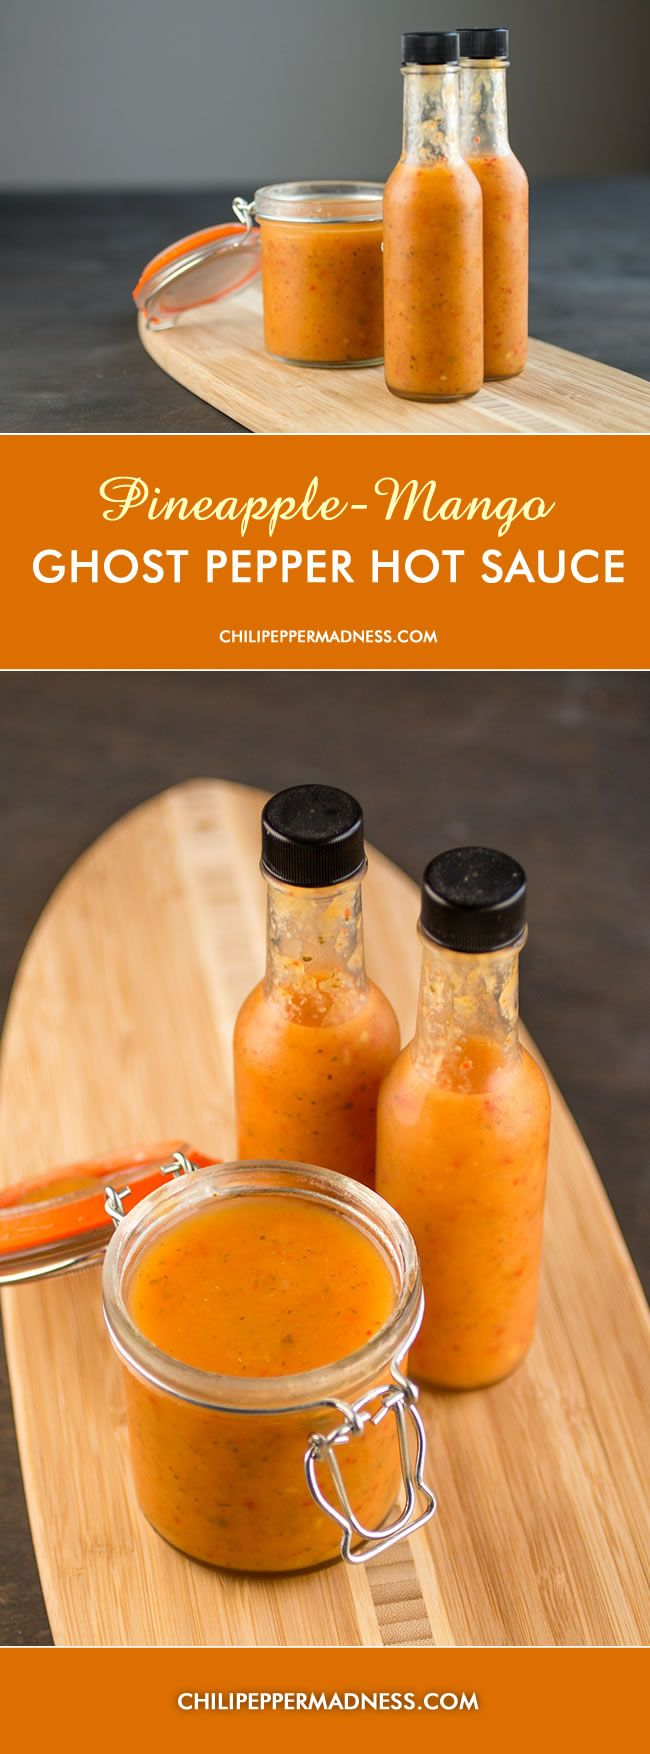 Pineapple-Mango Ghost Pepper Hot Sauce